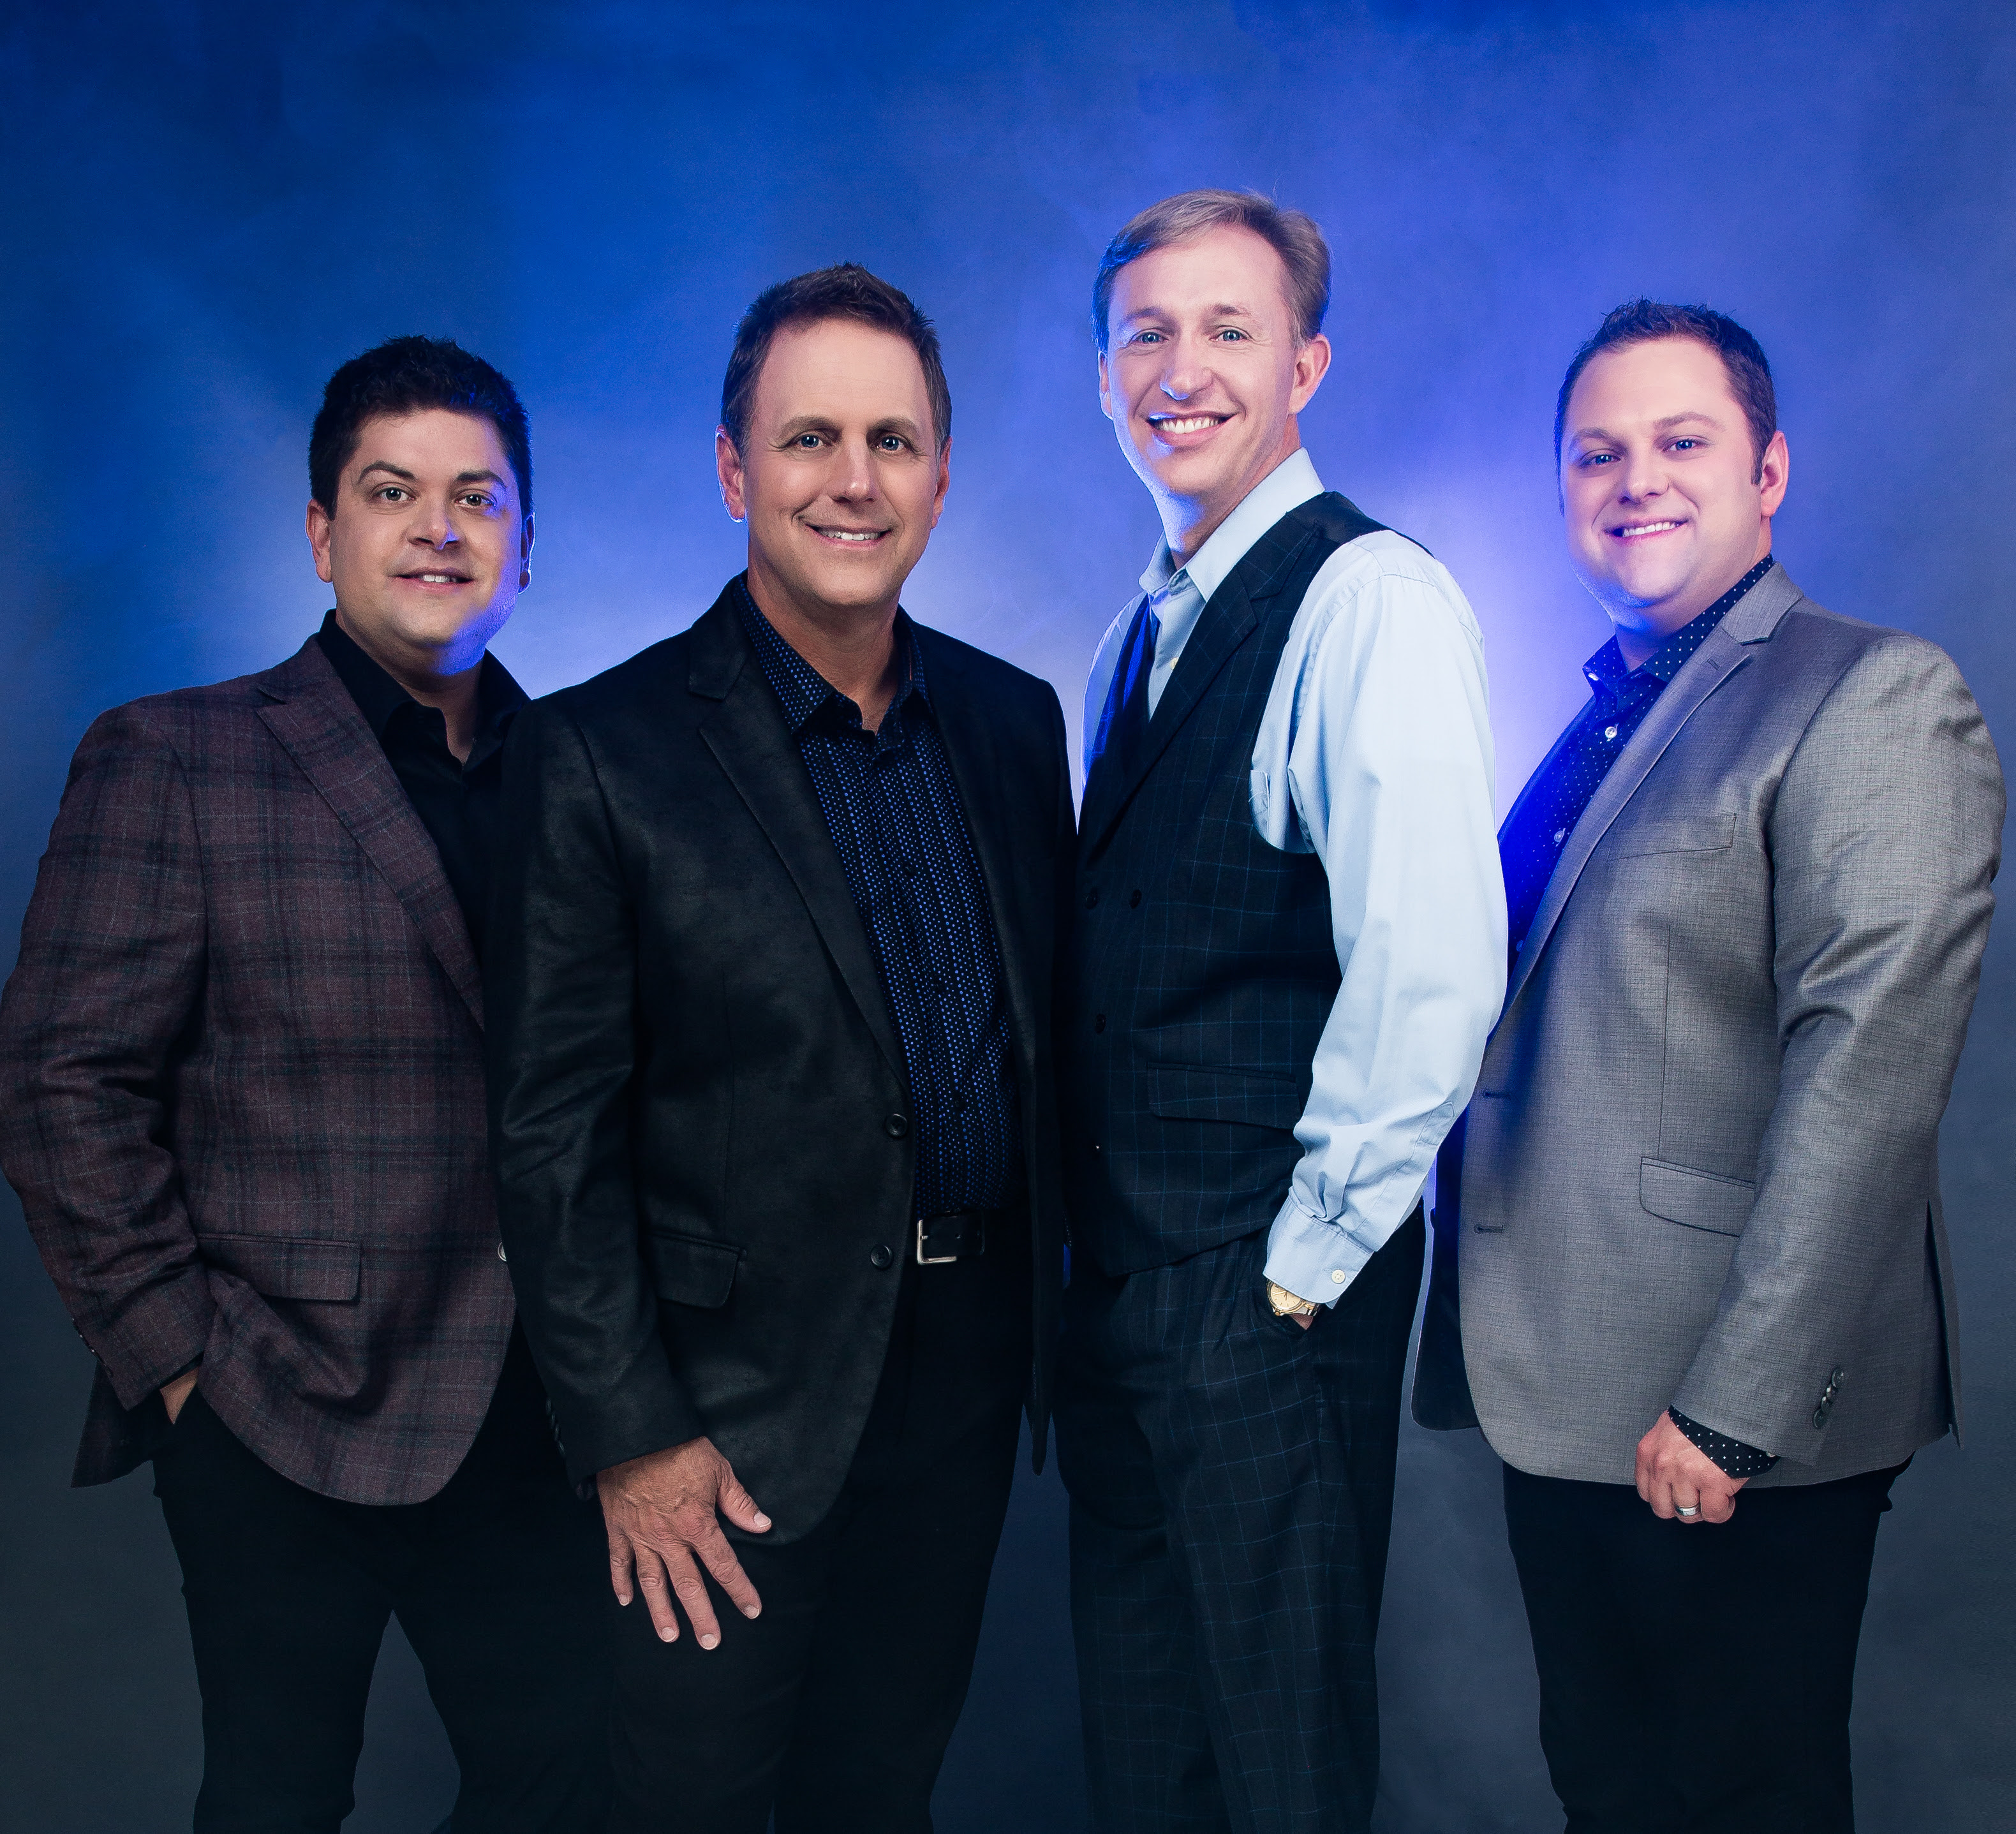 The Lefevre Quartet Announces Two New Members